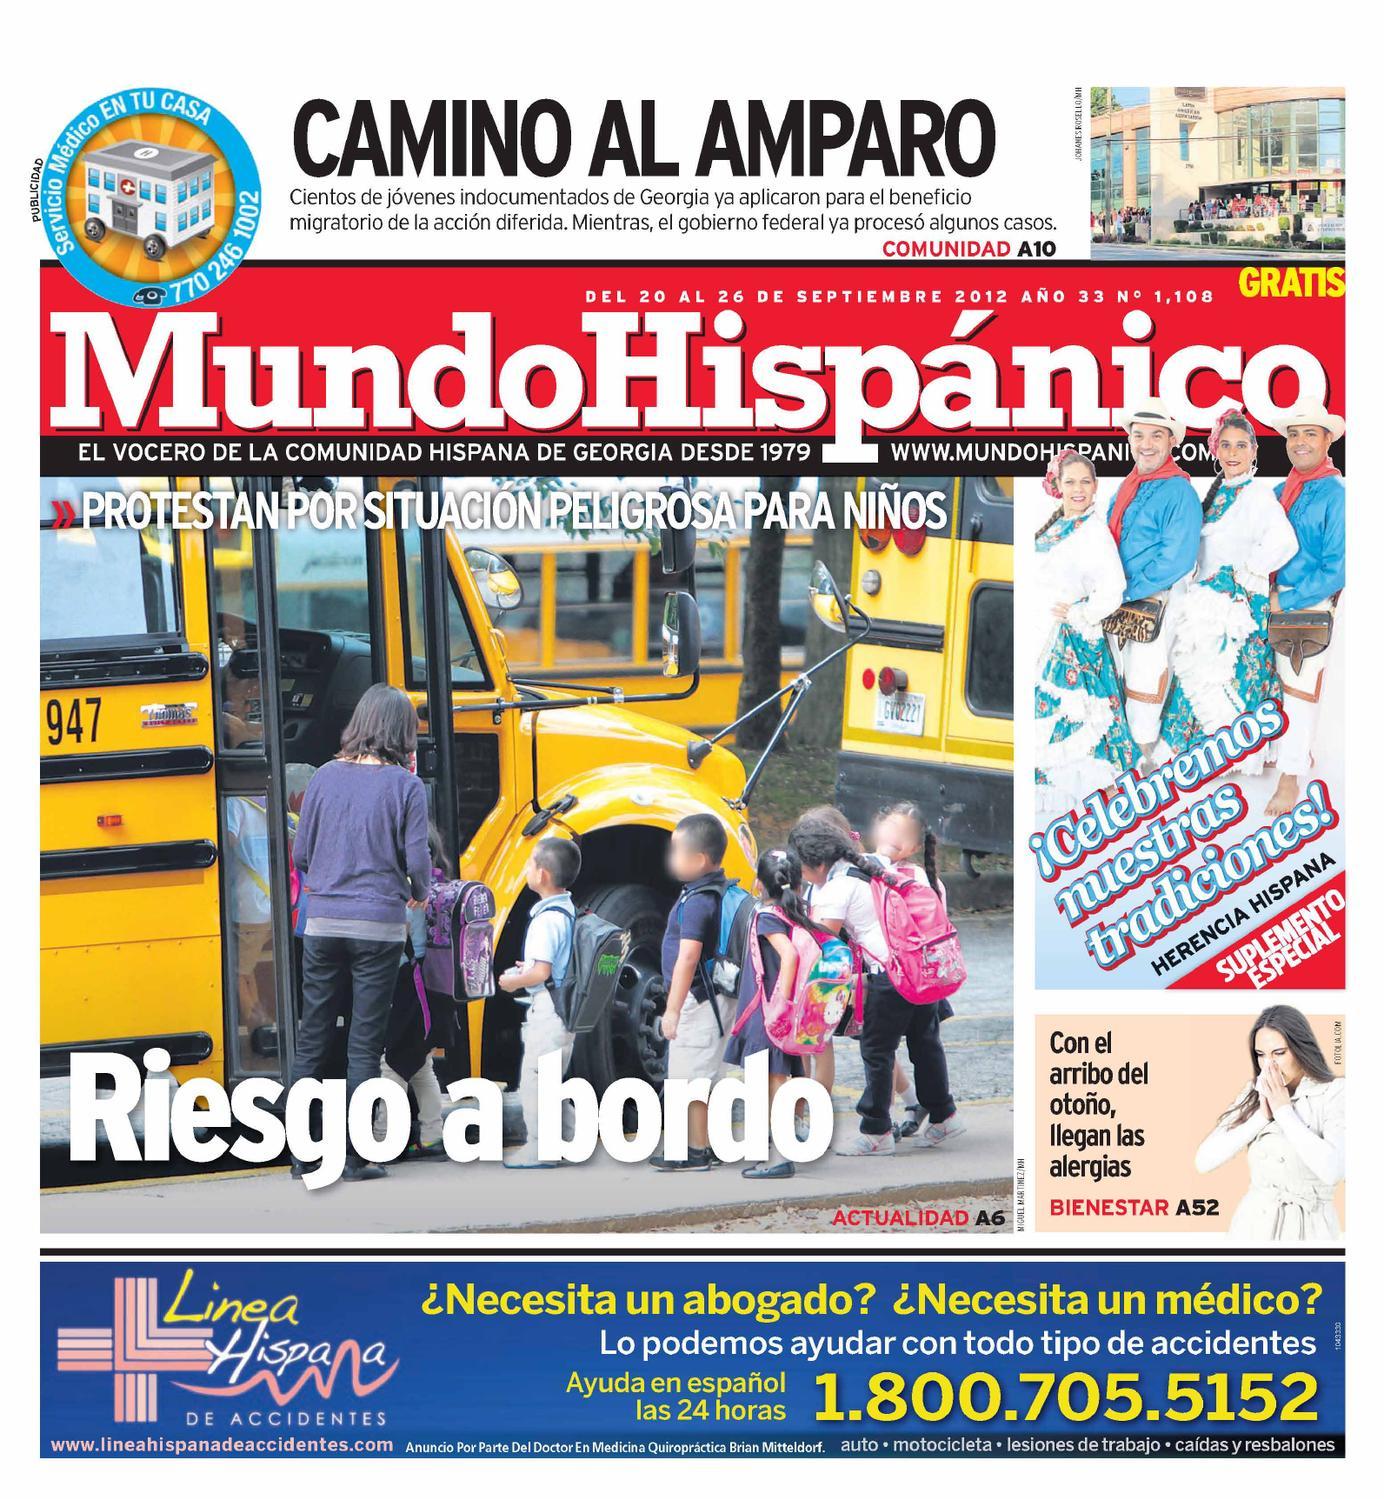 Mundo Hispanico 09-20-12 by MUNDO HISPANICO - issuu